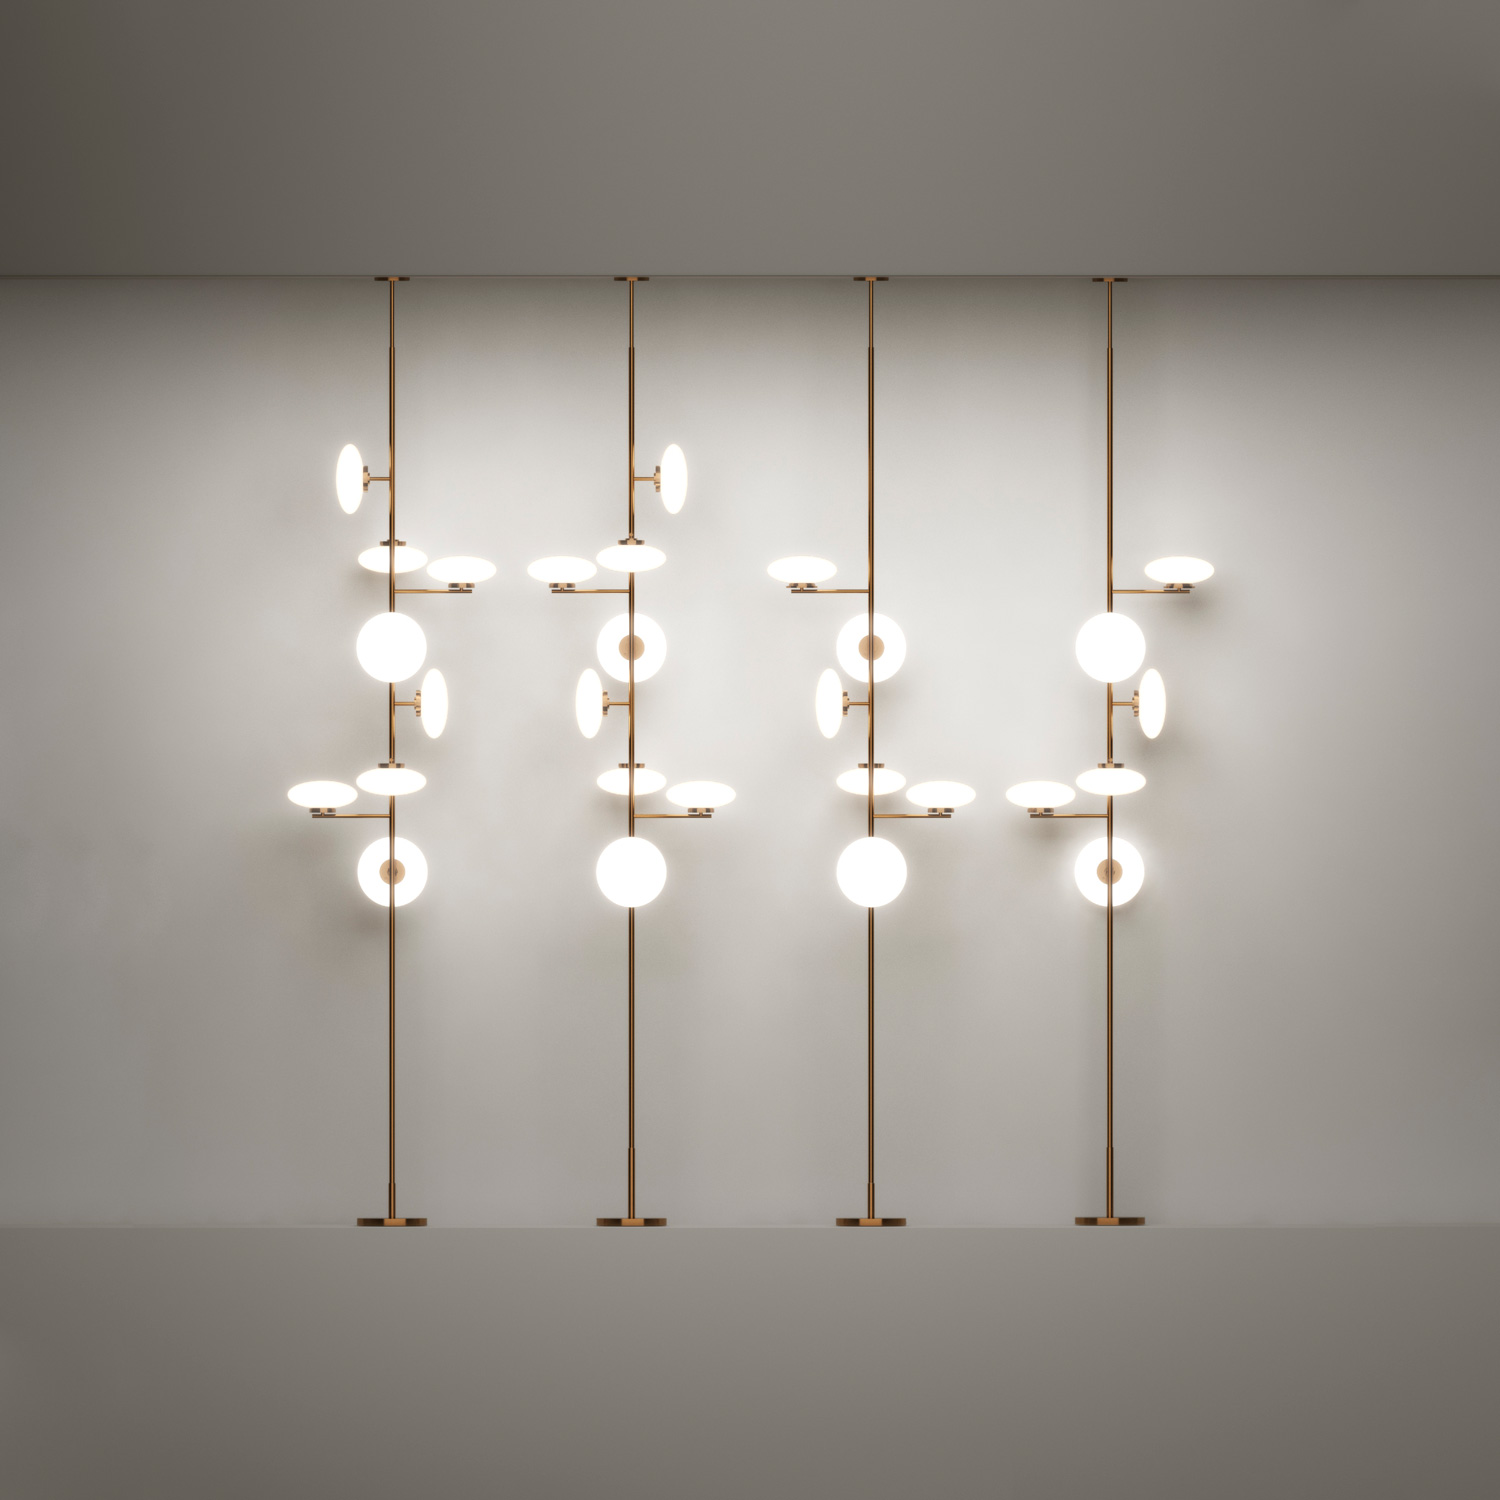 Lamp Ceiling To Floor: Italian Brand Penta Lighting Arrives At Fanuli